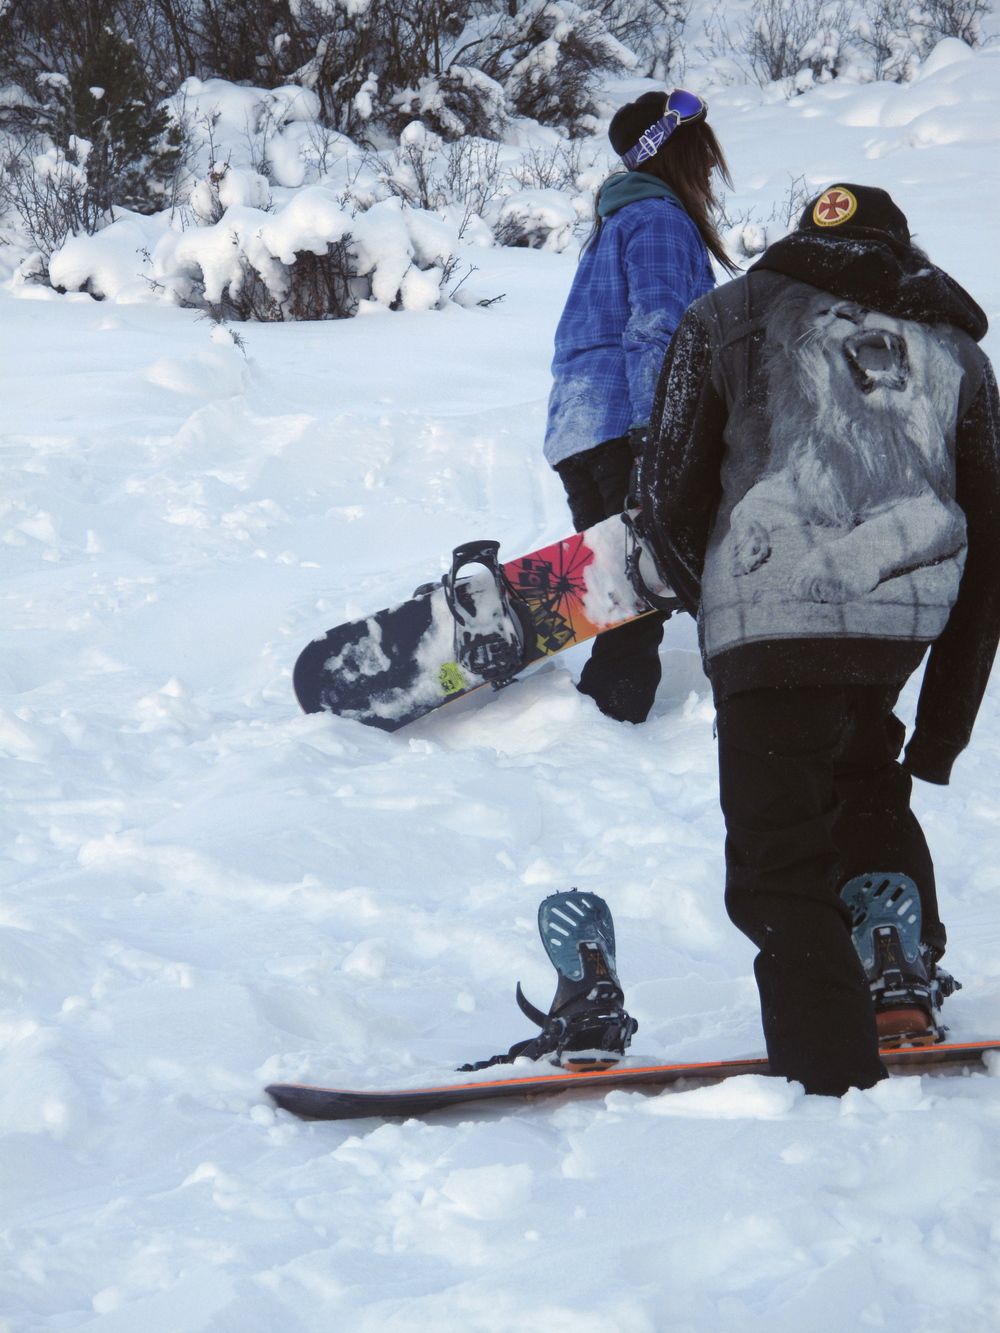 Snowboarders trekking up a snowy hill in the back country of Colorado